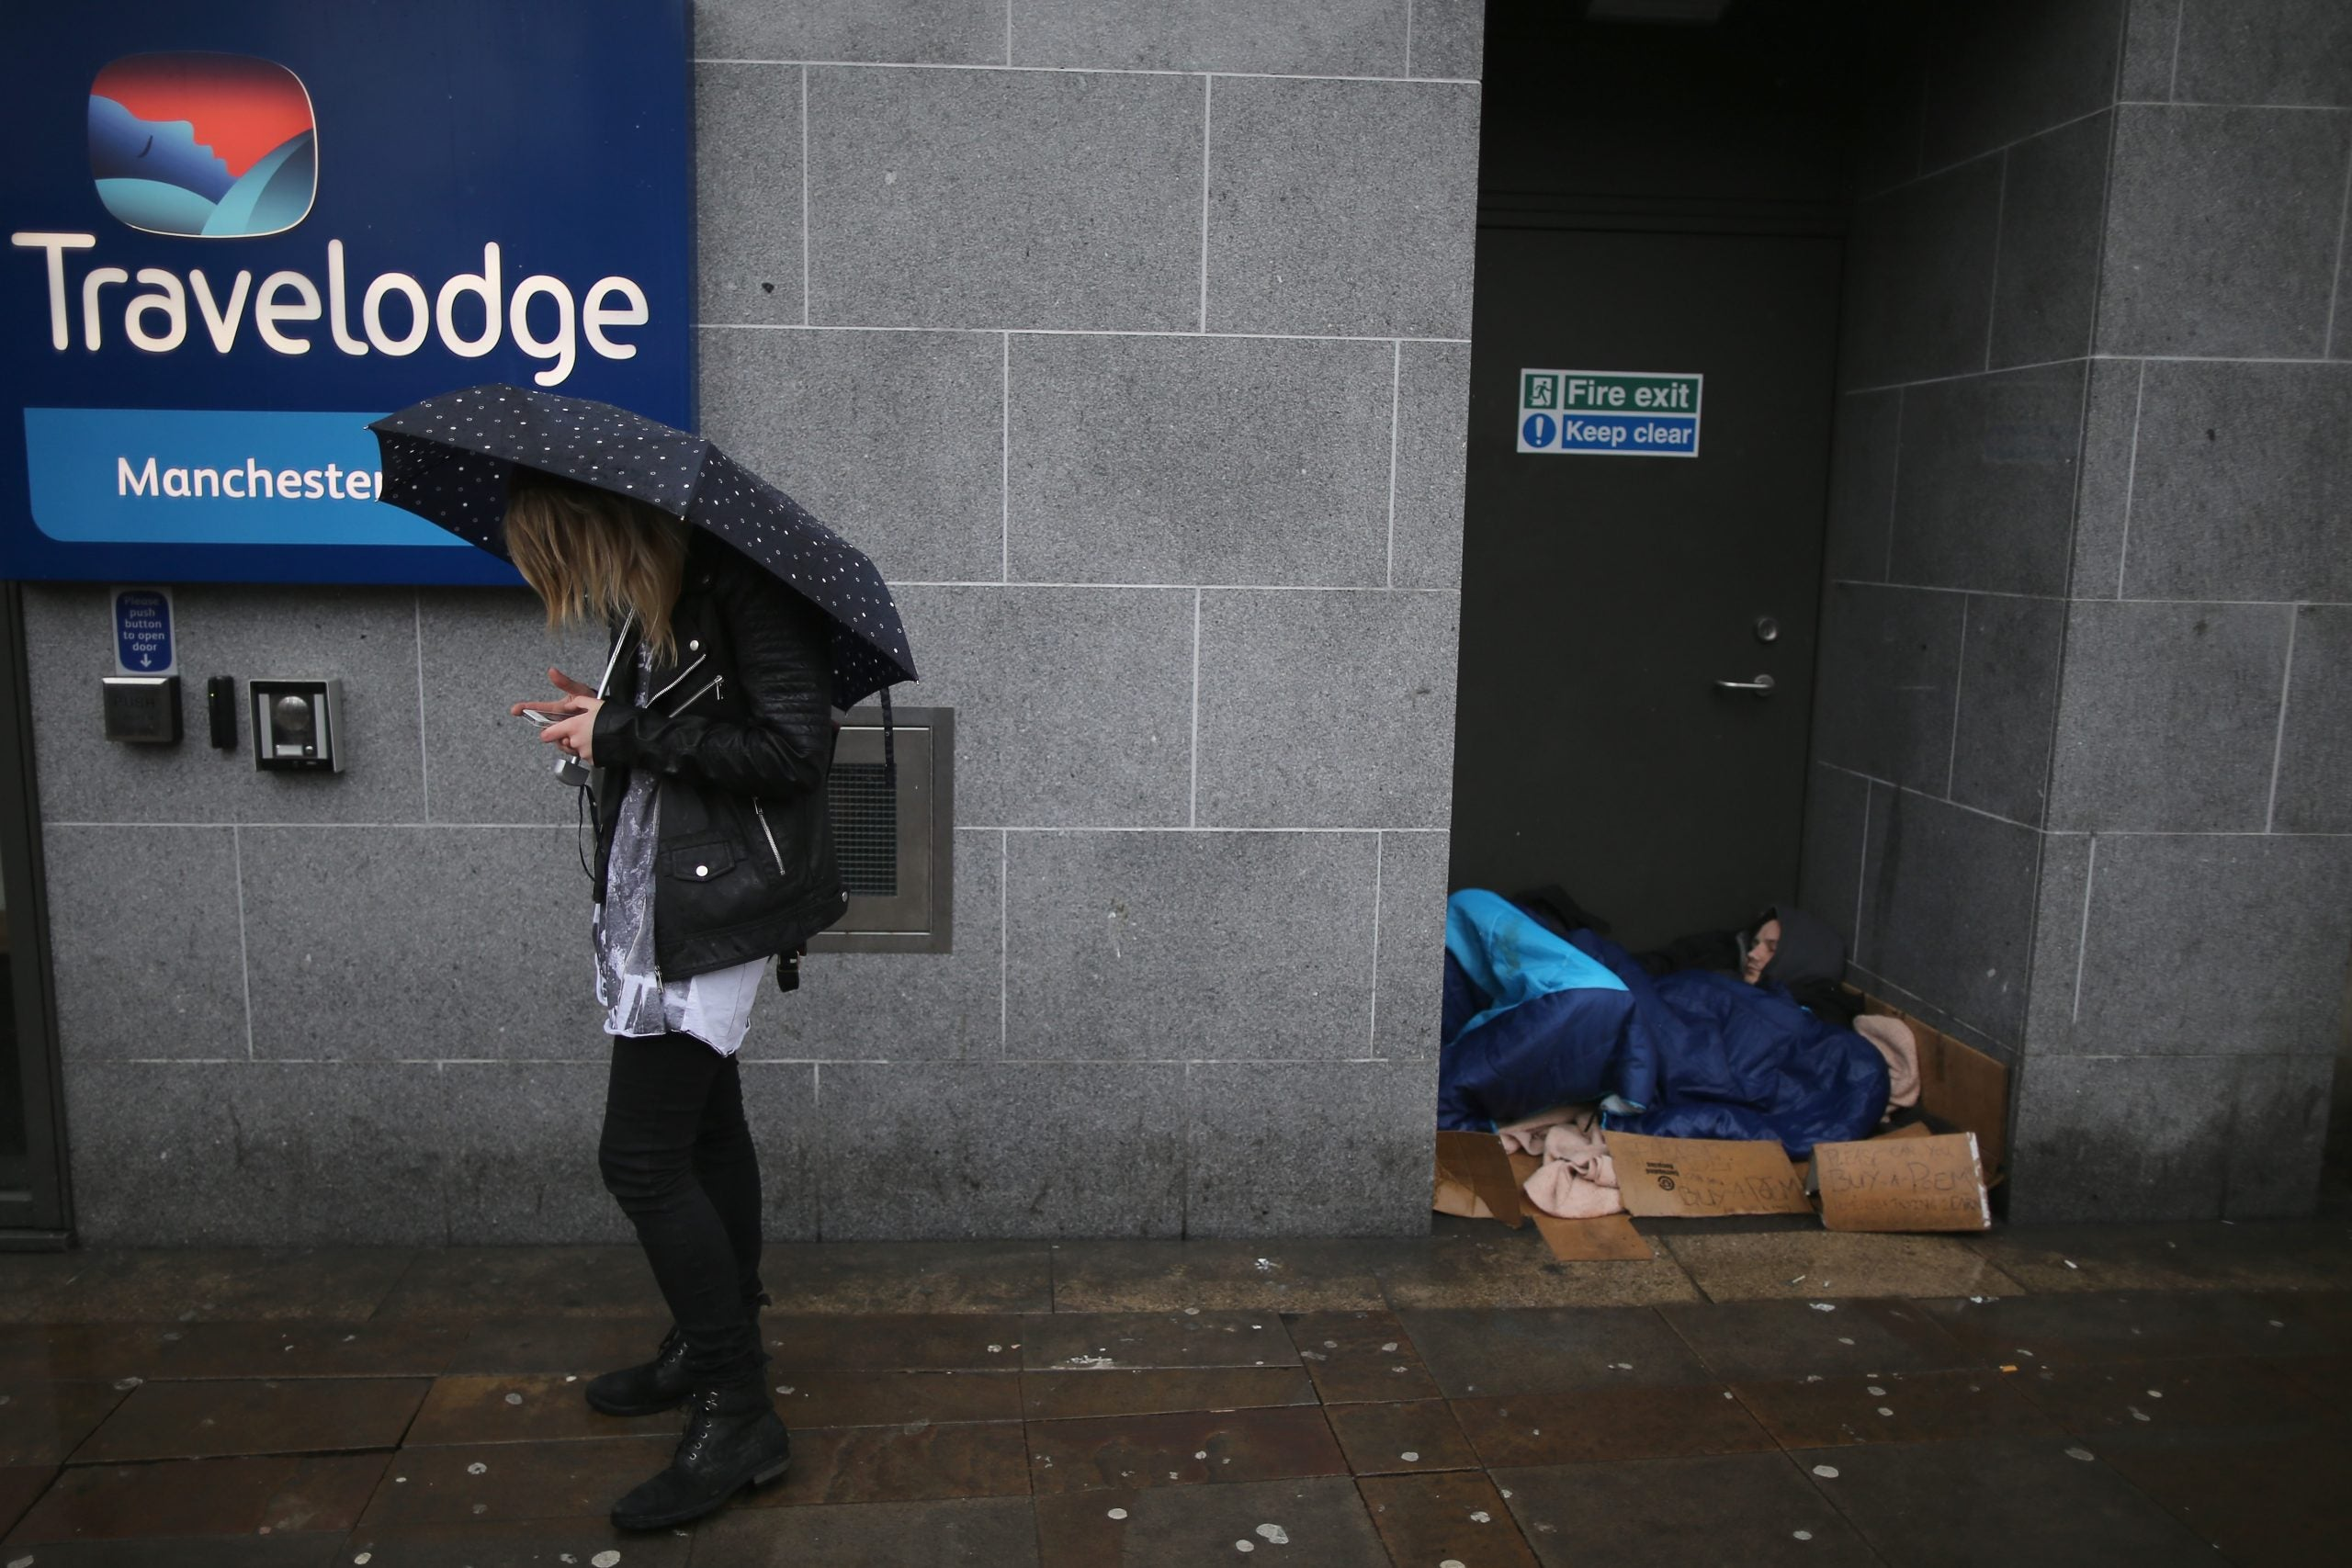 The government has cut more from poor, Labour councils than rich Tory ones – and it shows